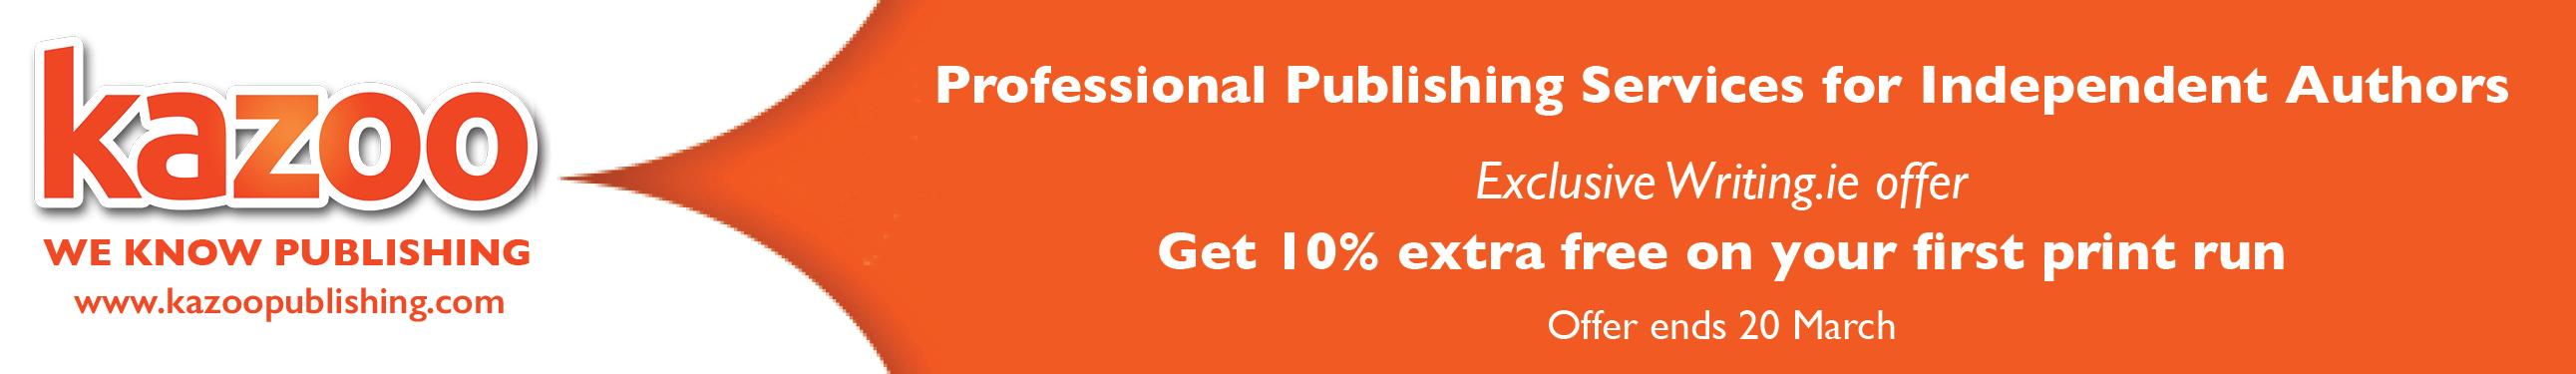 Kazoo Independent Publishing Services Special Offer